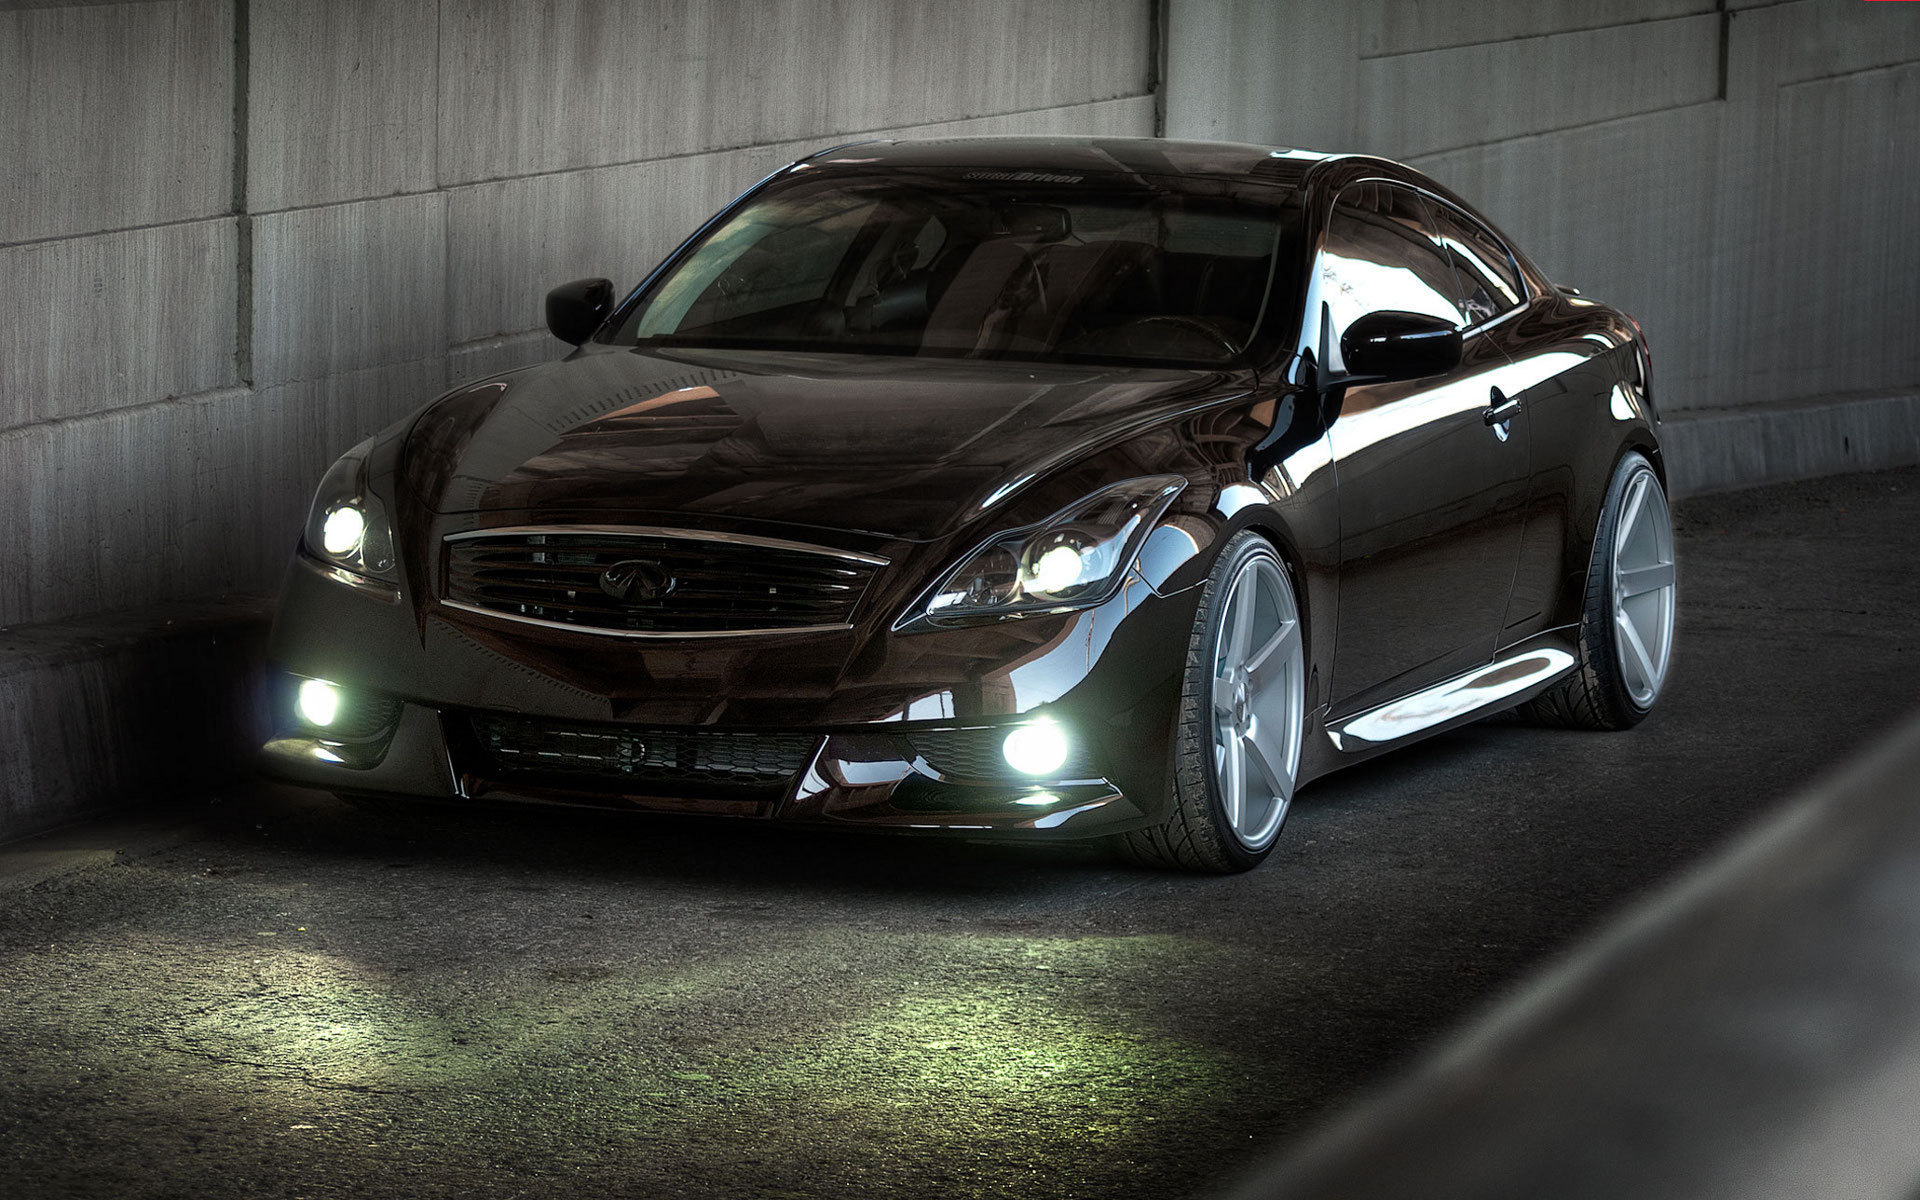 Infiniti G37 0 60 >> 295 Infiniti HD Wallpapers | Backgrounds - Wallpaper Abyss - Page 3